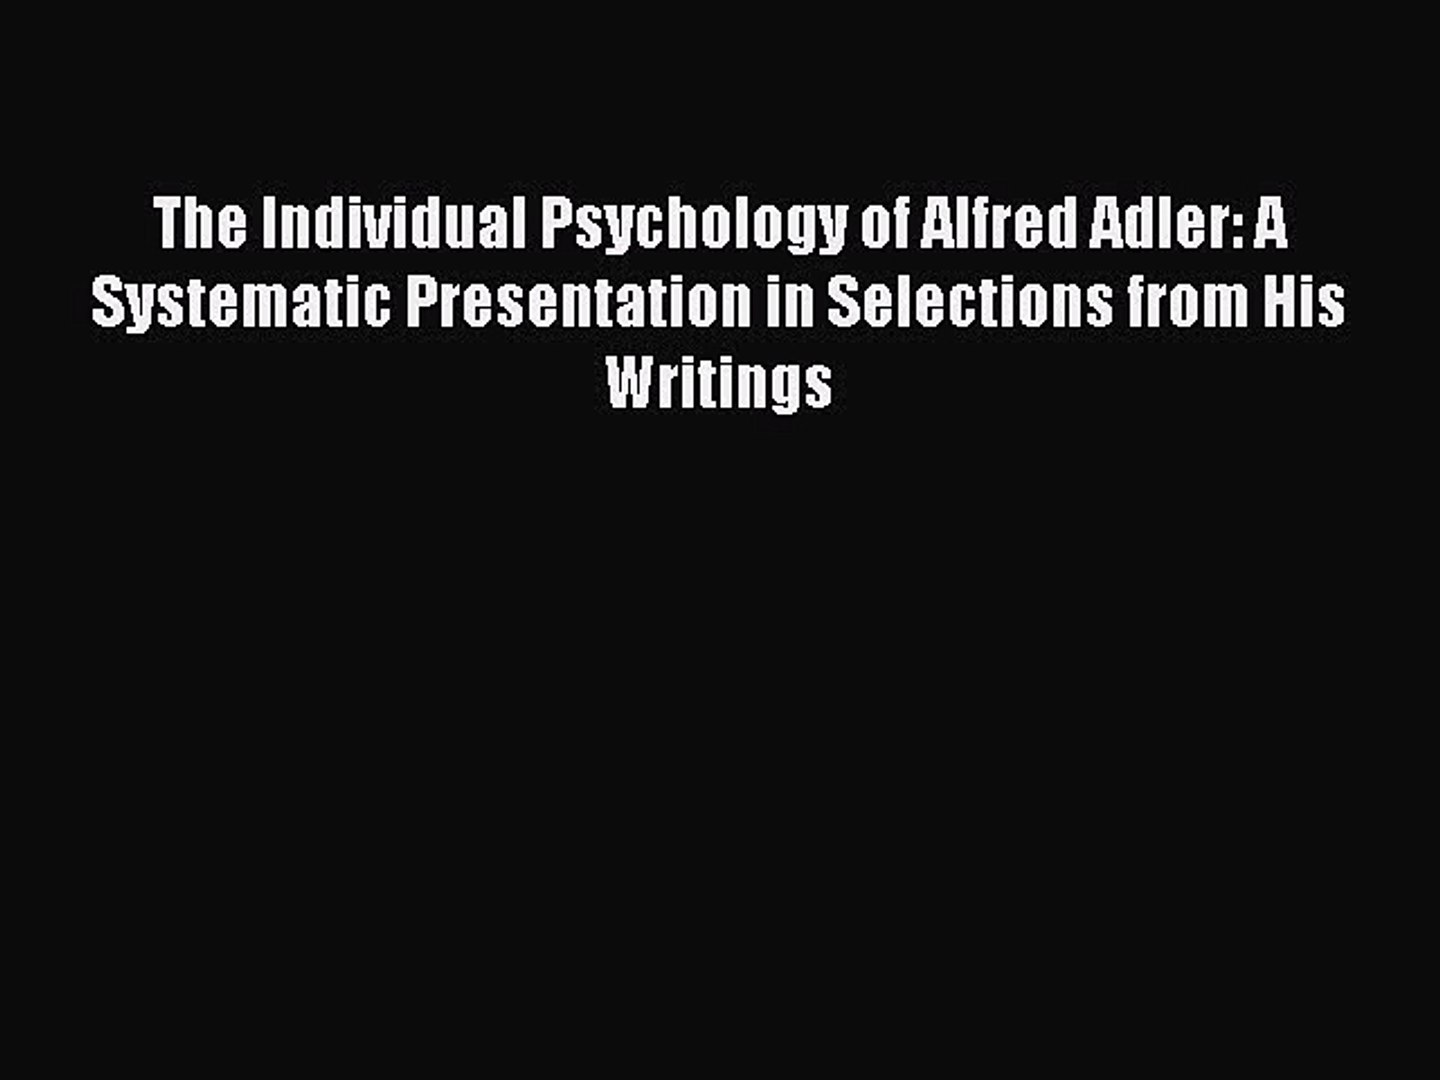 The Collected Clinical Works of Alfred Adler, Volume 12 The General System of Individual Psychology